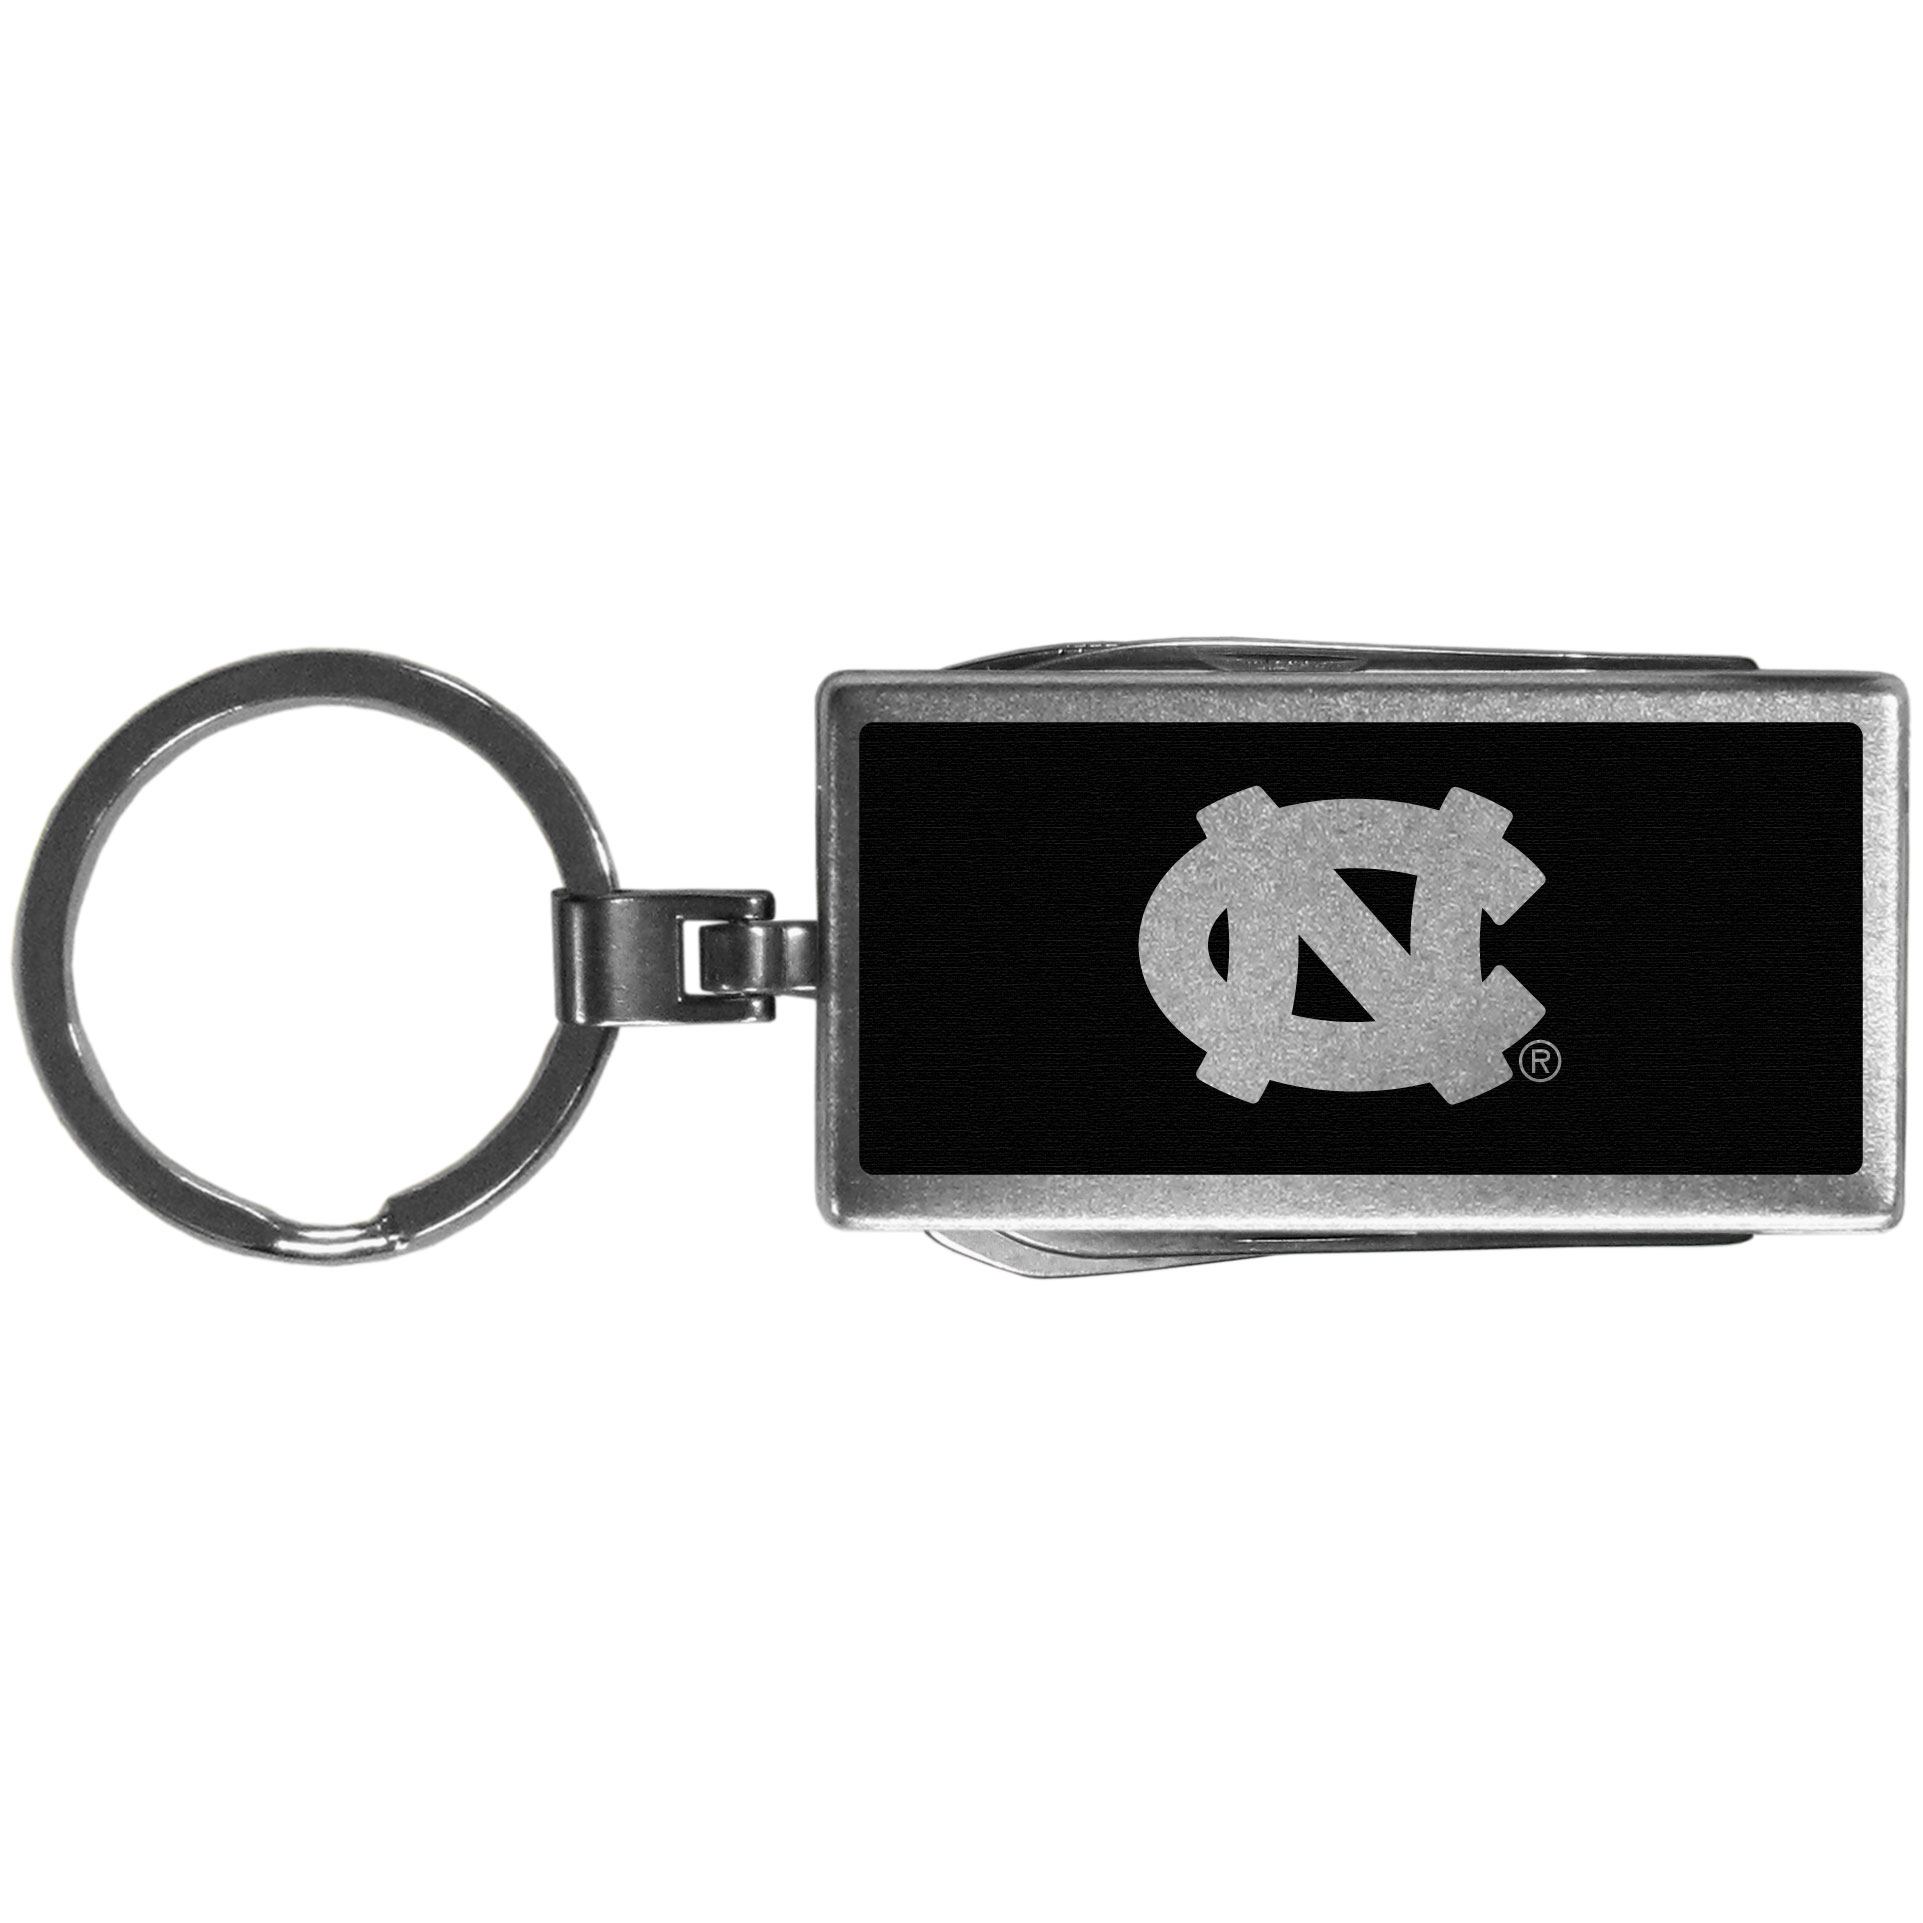 N. Carolina Tar Heels Multi-tool Key Chain, Black - Be the hero at the tailgate, camping, or on a Friday night with your N. Carolina Tar Heels Multi-Tool Keychain which comes complete with bottle opener, scissors, knife, nail file and screw driver. Be it opening a package or a beverage Siskiyou's Multi-Tool Keychain goes wherever your keys do. The keychain hangs at 4 inches long when closed.